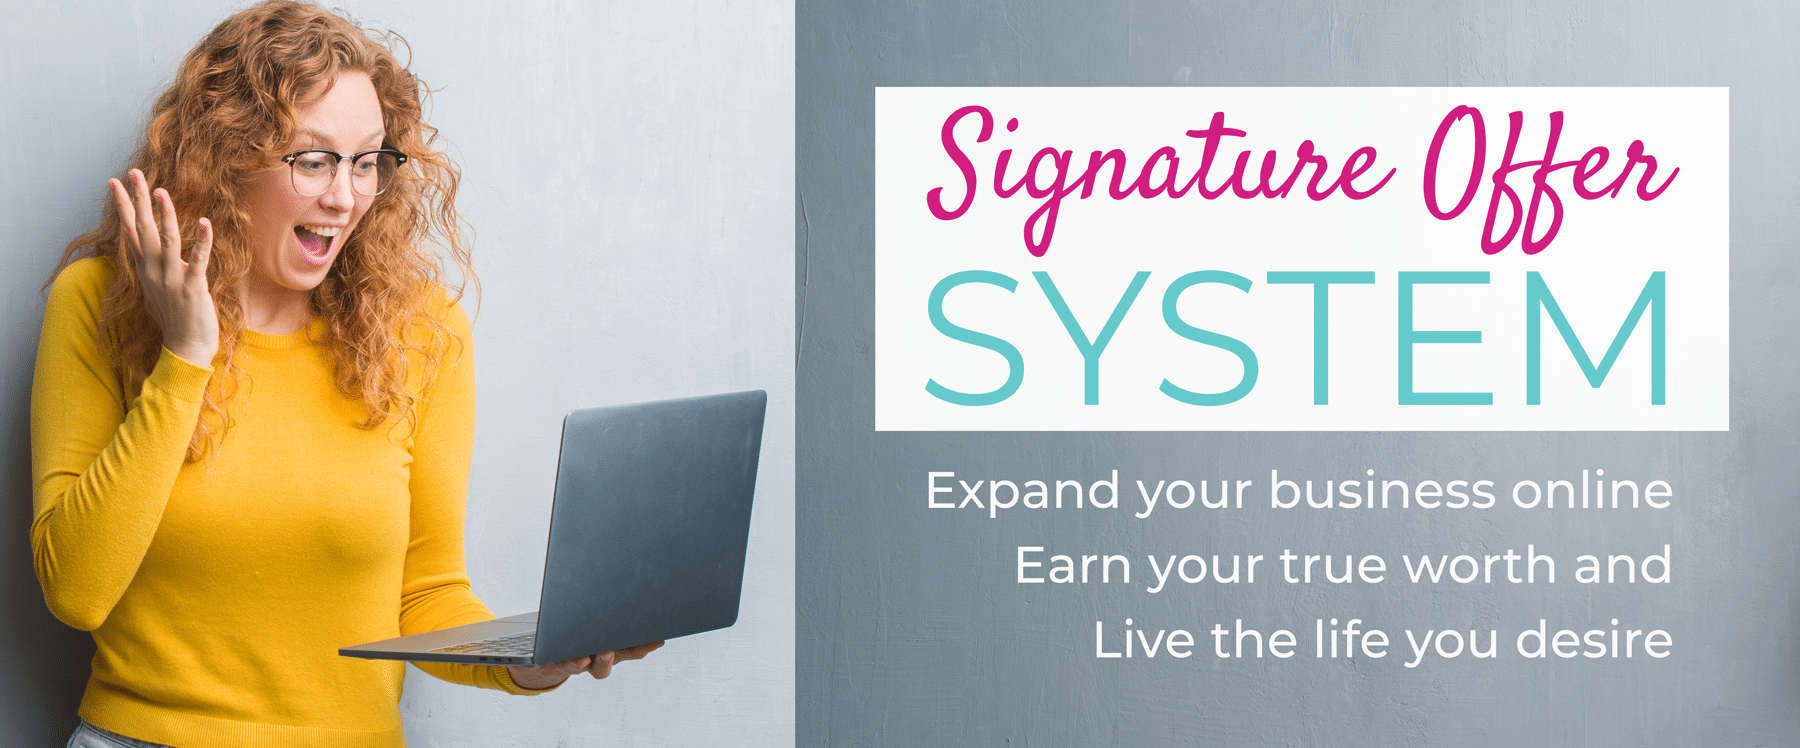 Signature Offer System, Expand your business online, earn your true worth, and life the life you desire